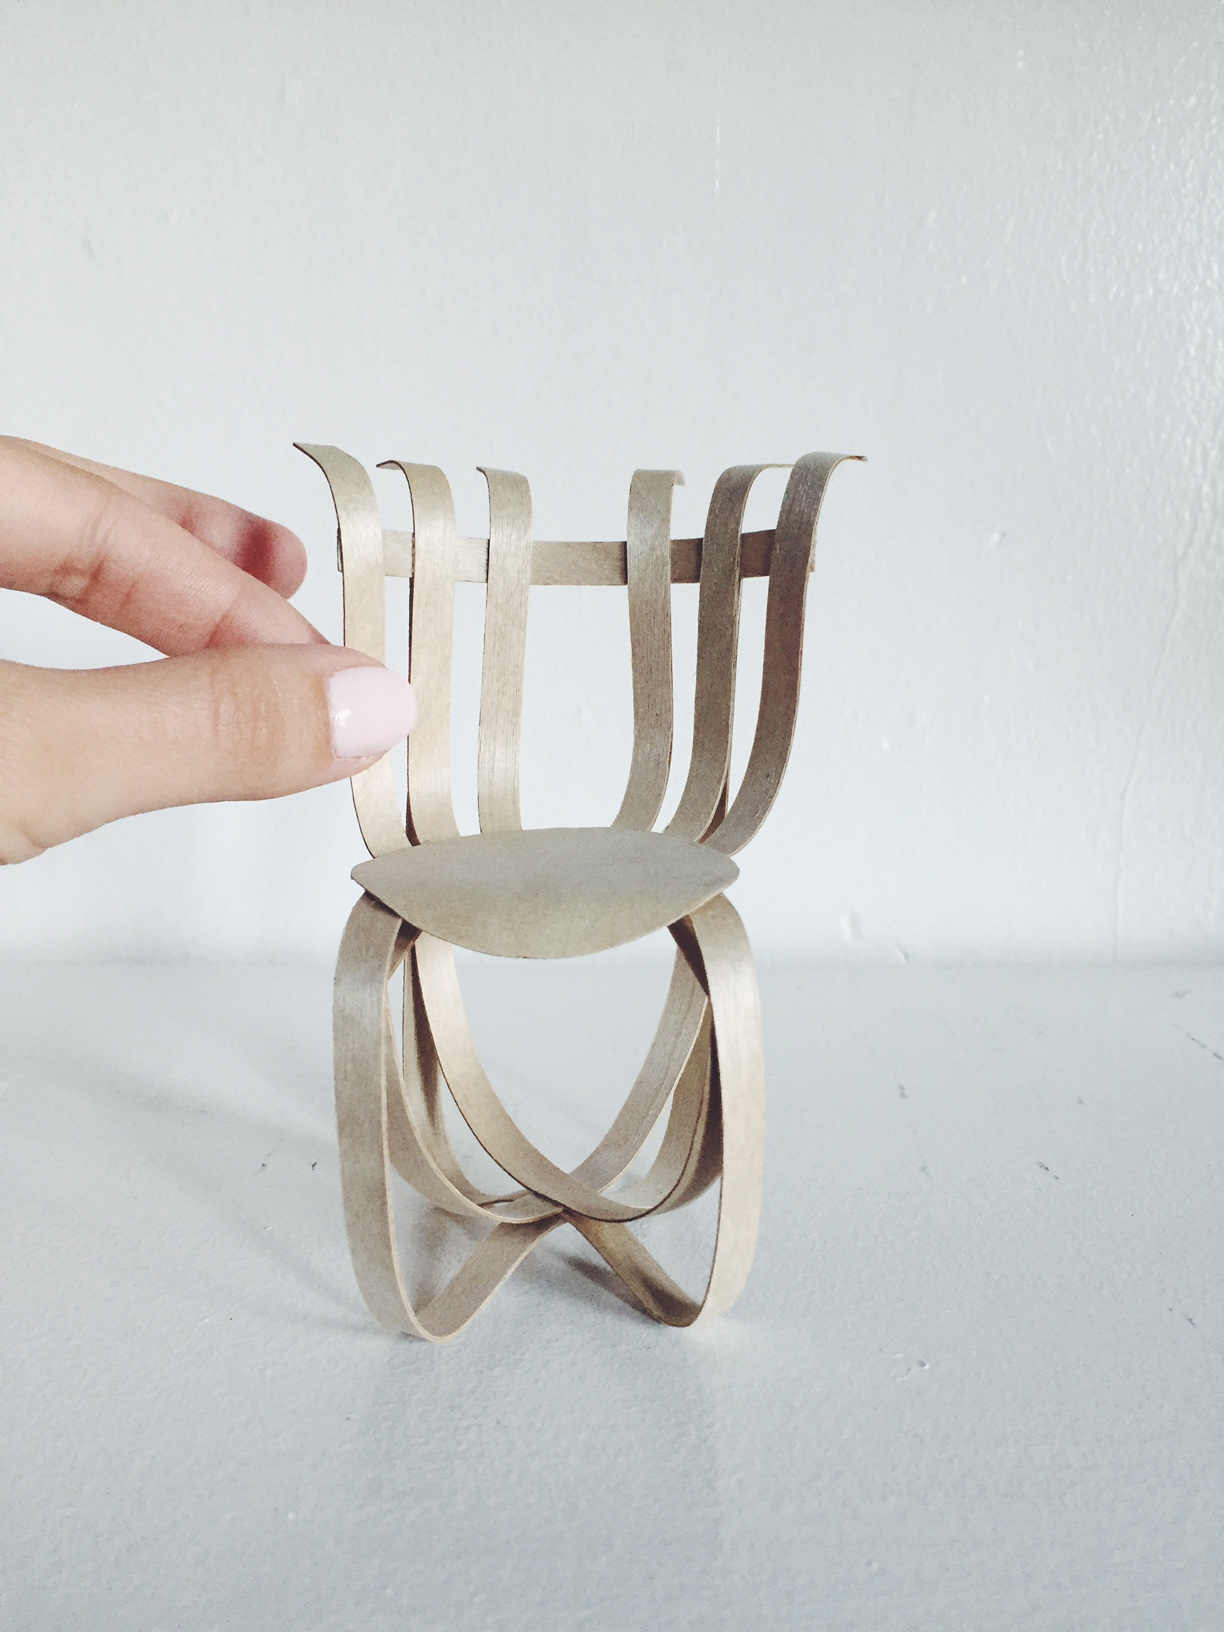 Hat Trick Chair. Designed by Gehry, miniaturized by me.